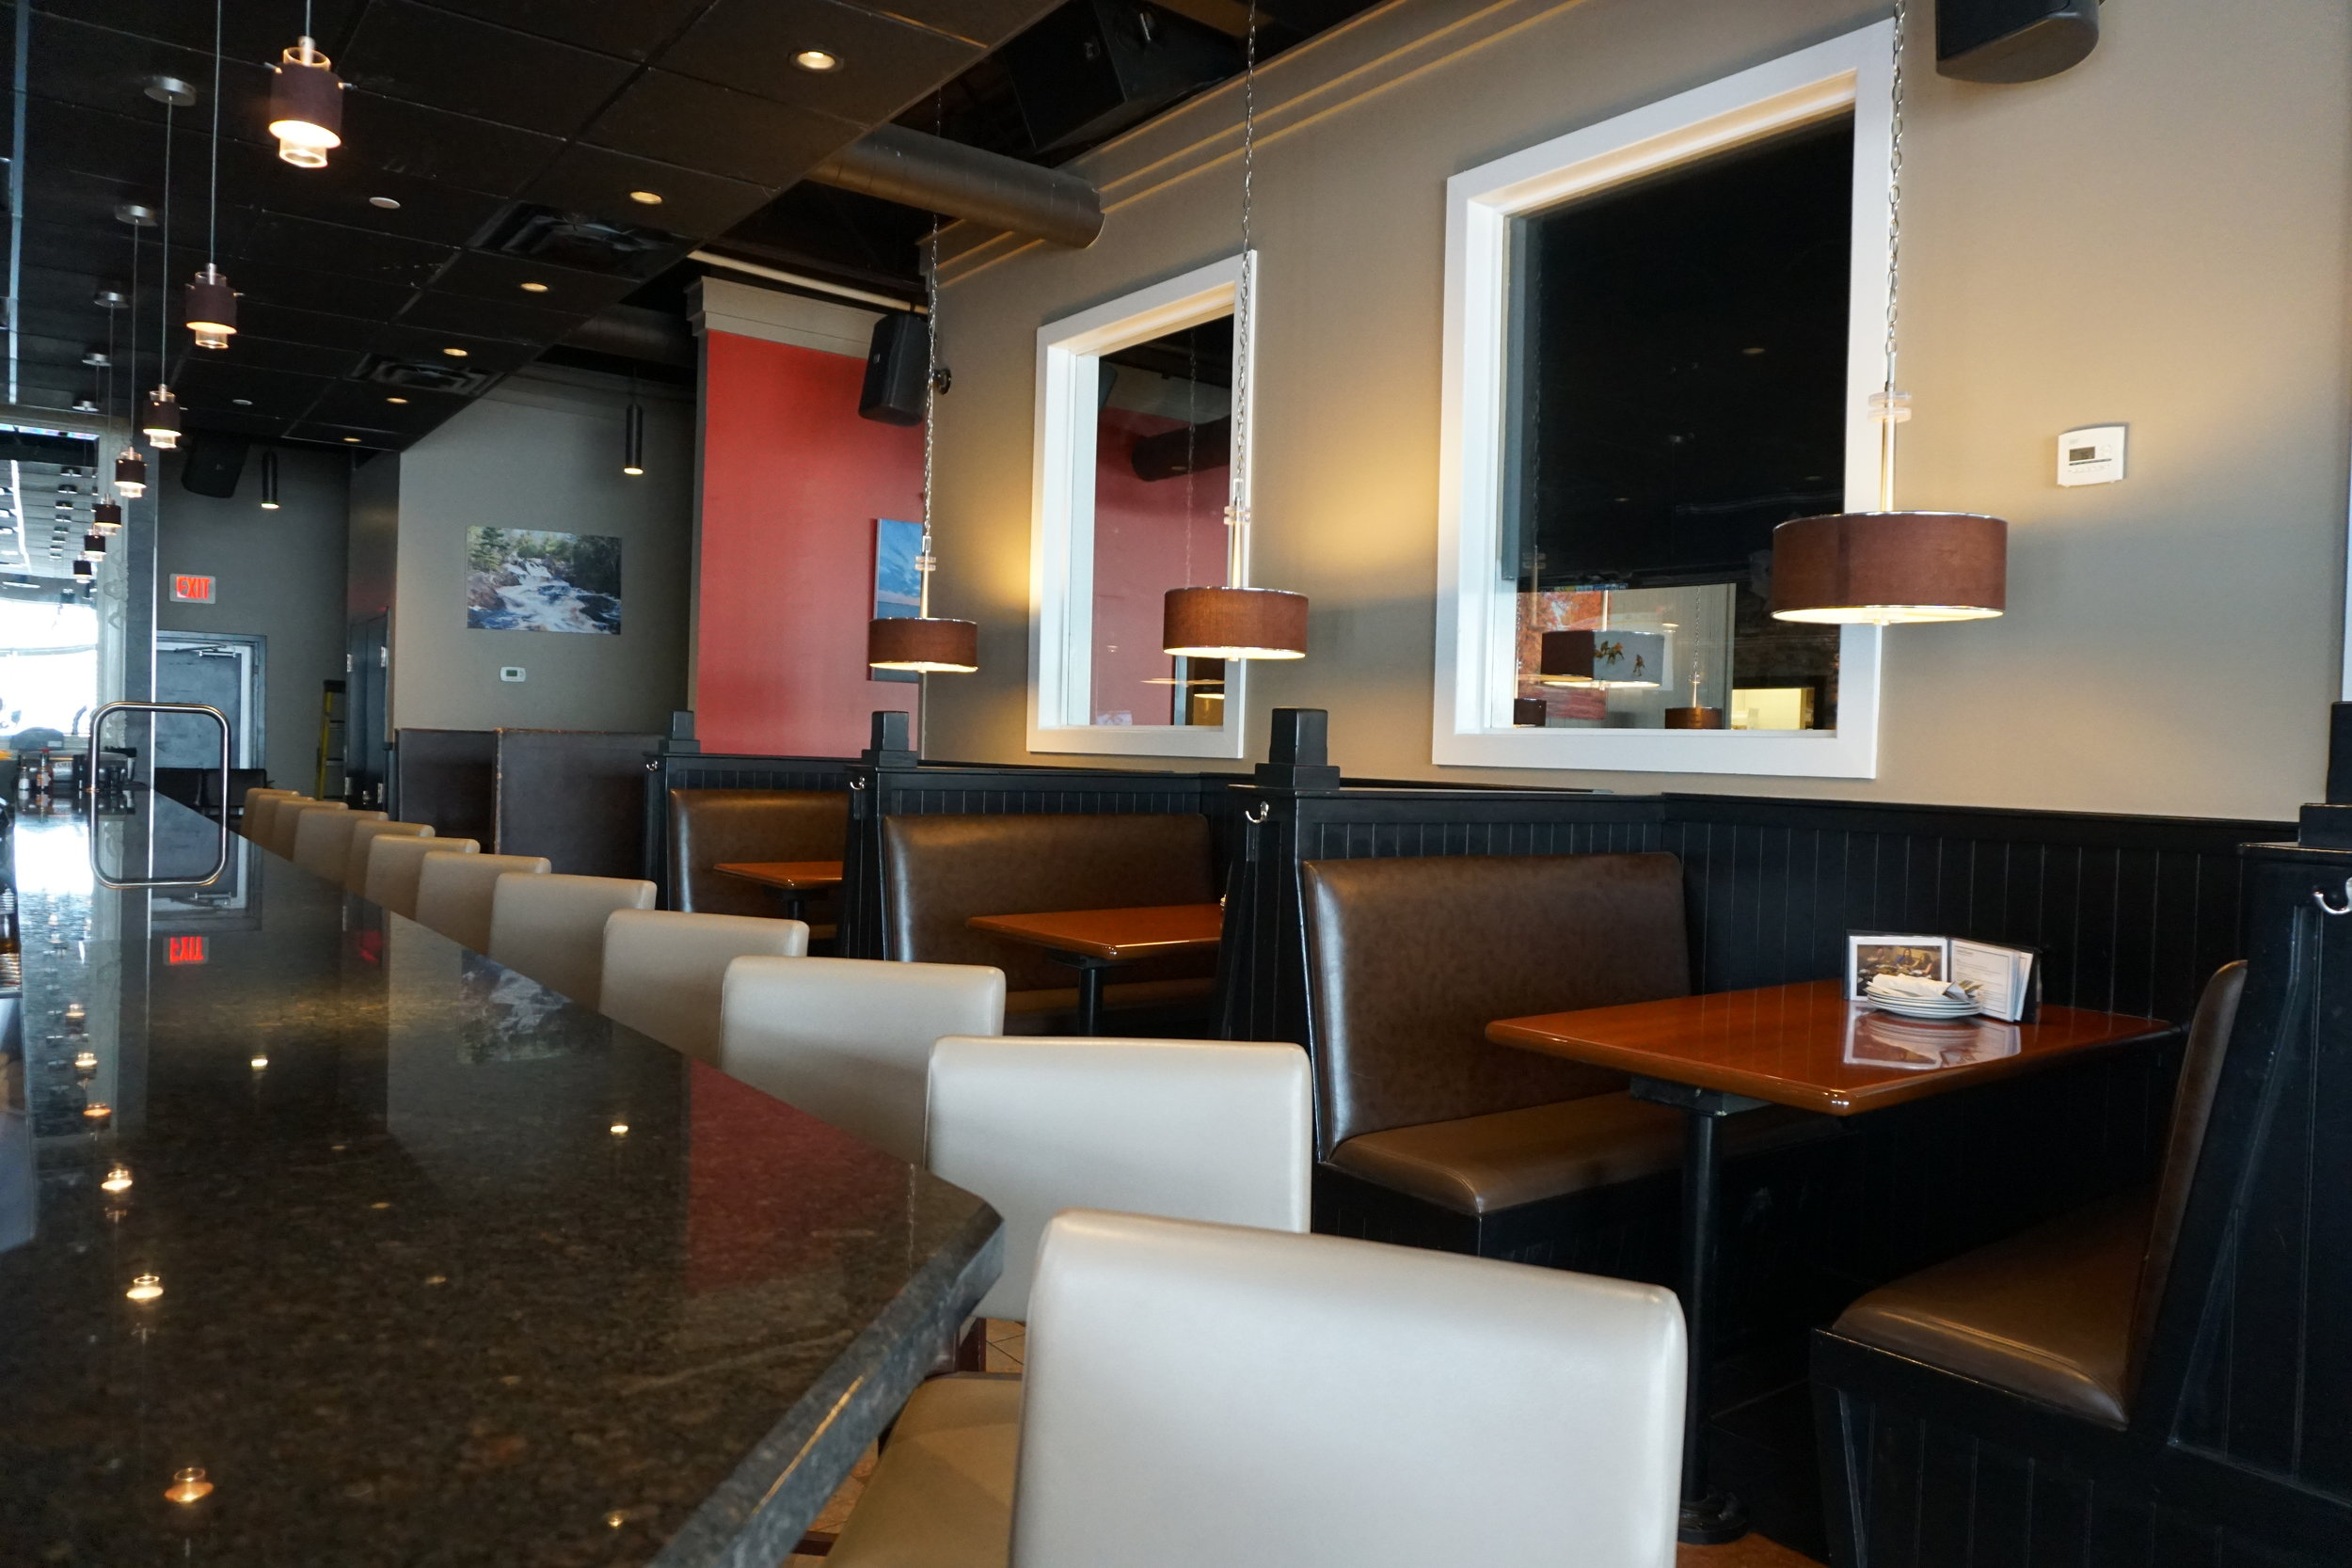 MM12 Page 29 Resto Profile Clarkson BarGrill Image 5.JPG